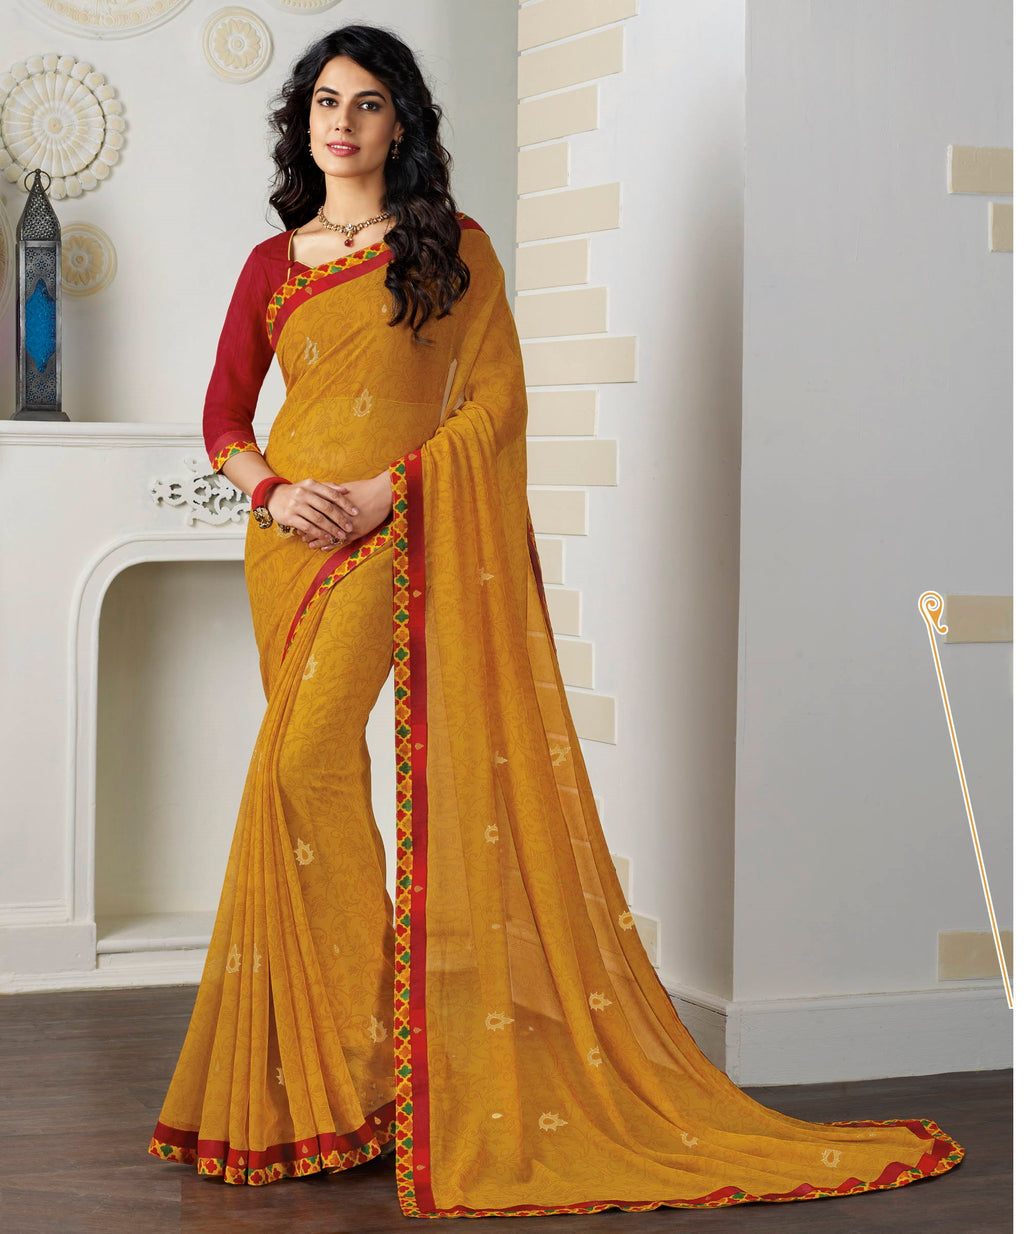 Yellow Color Chiffon Pretty Kitty Party Sarees NYF-4221 - YellowFashion.in